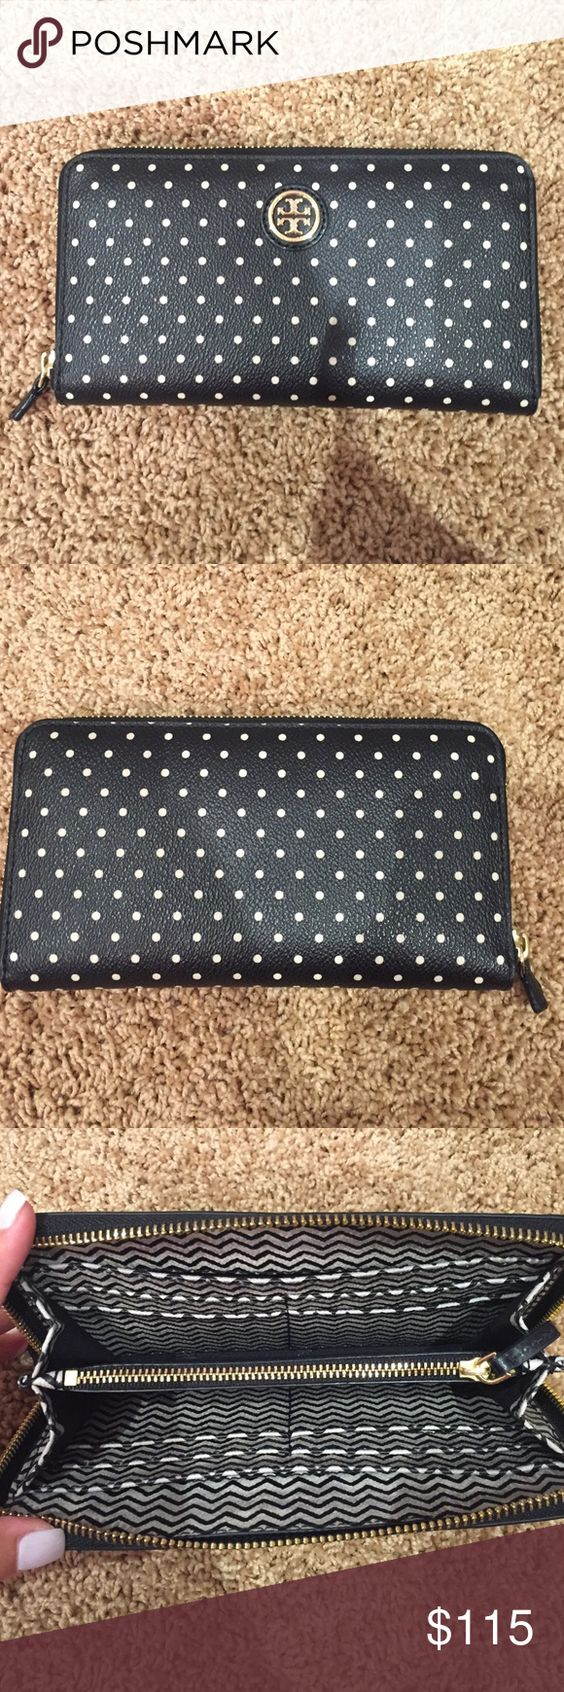 "Tory Burch ""Kerrington"" polka dot wallet Tory Burch ""Kerrington"" wallet. Black with cream polka dots. Zips around. Lightly used with no signs of wear! Tory Burch Bags Wallets"